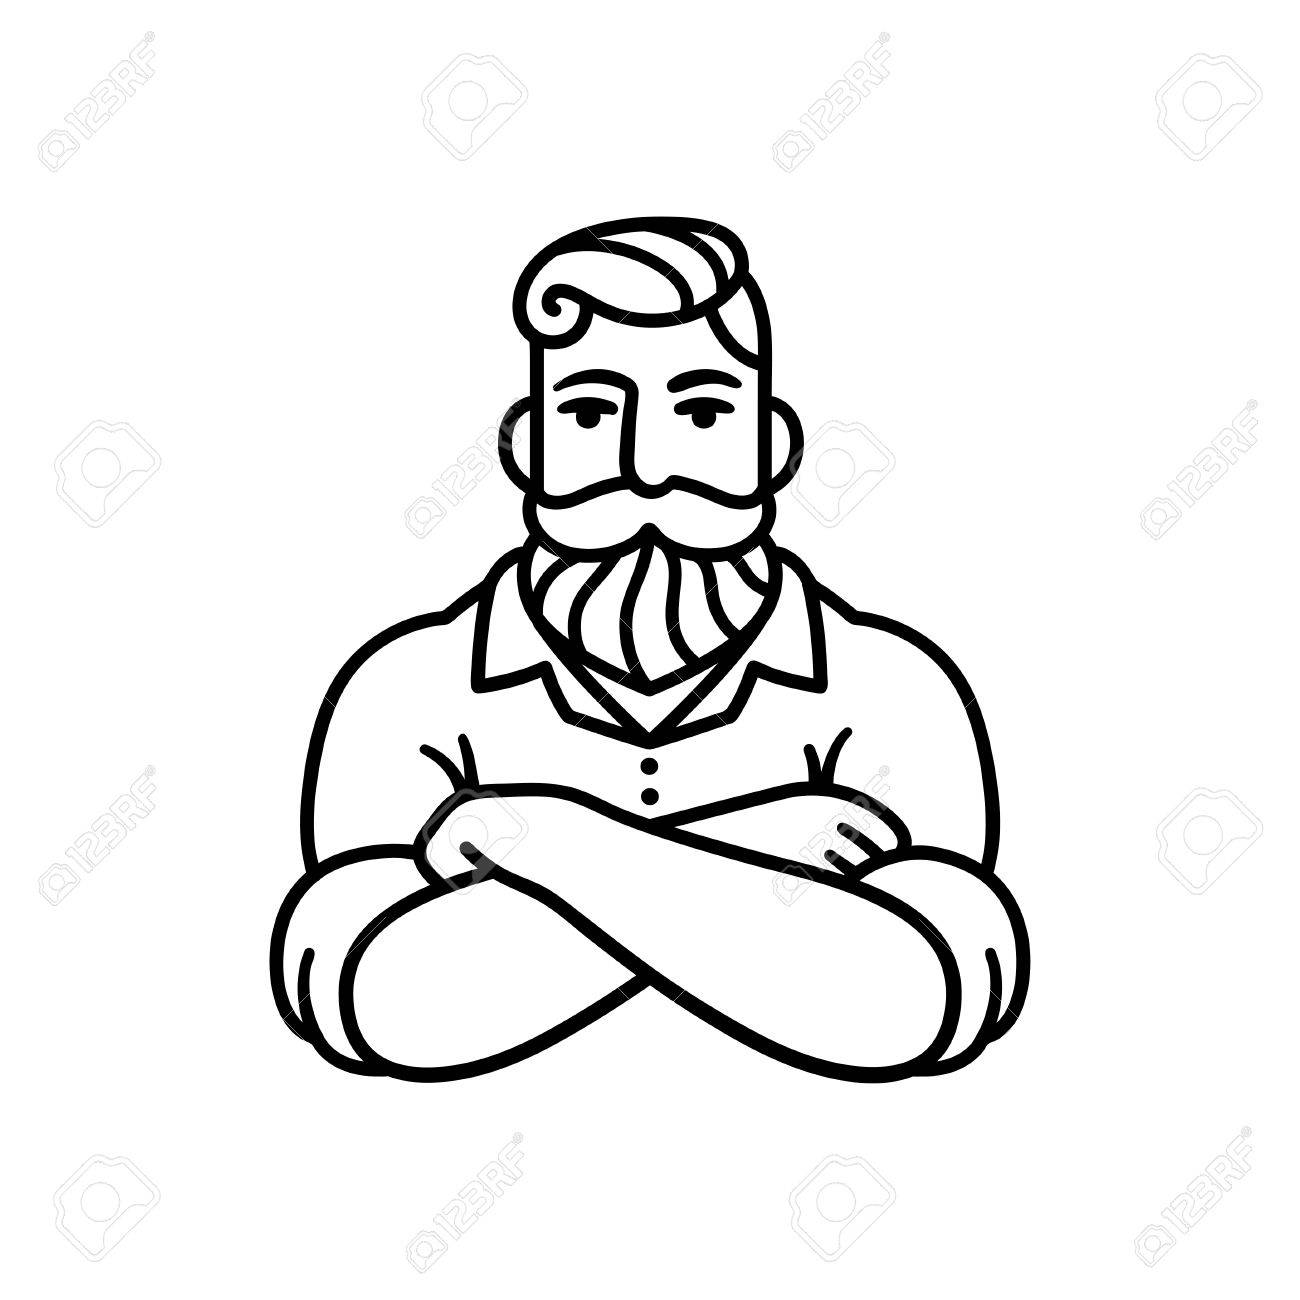 1300x1300 Black And White Line Drawing Of Bearded Man With Arms Crossed